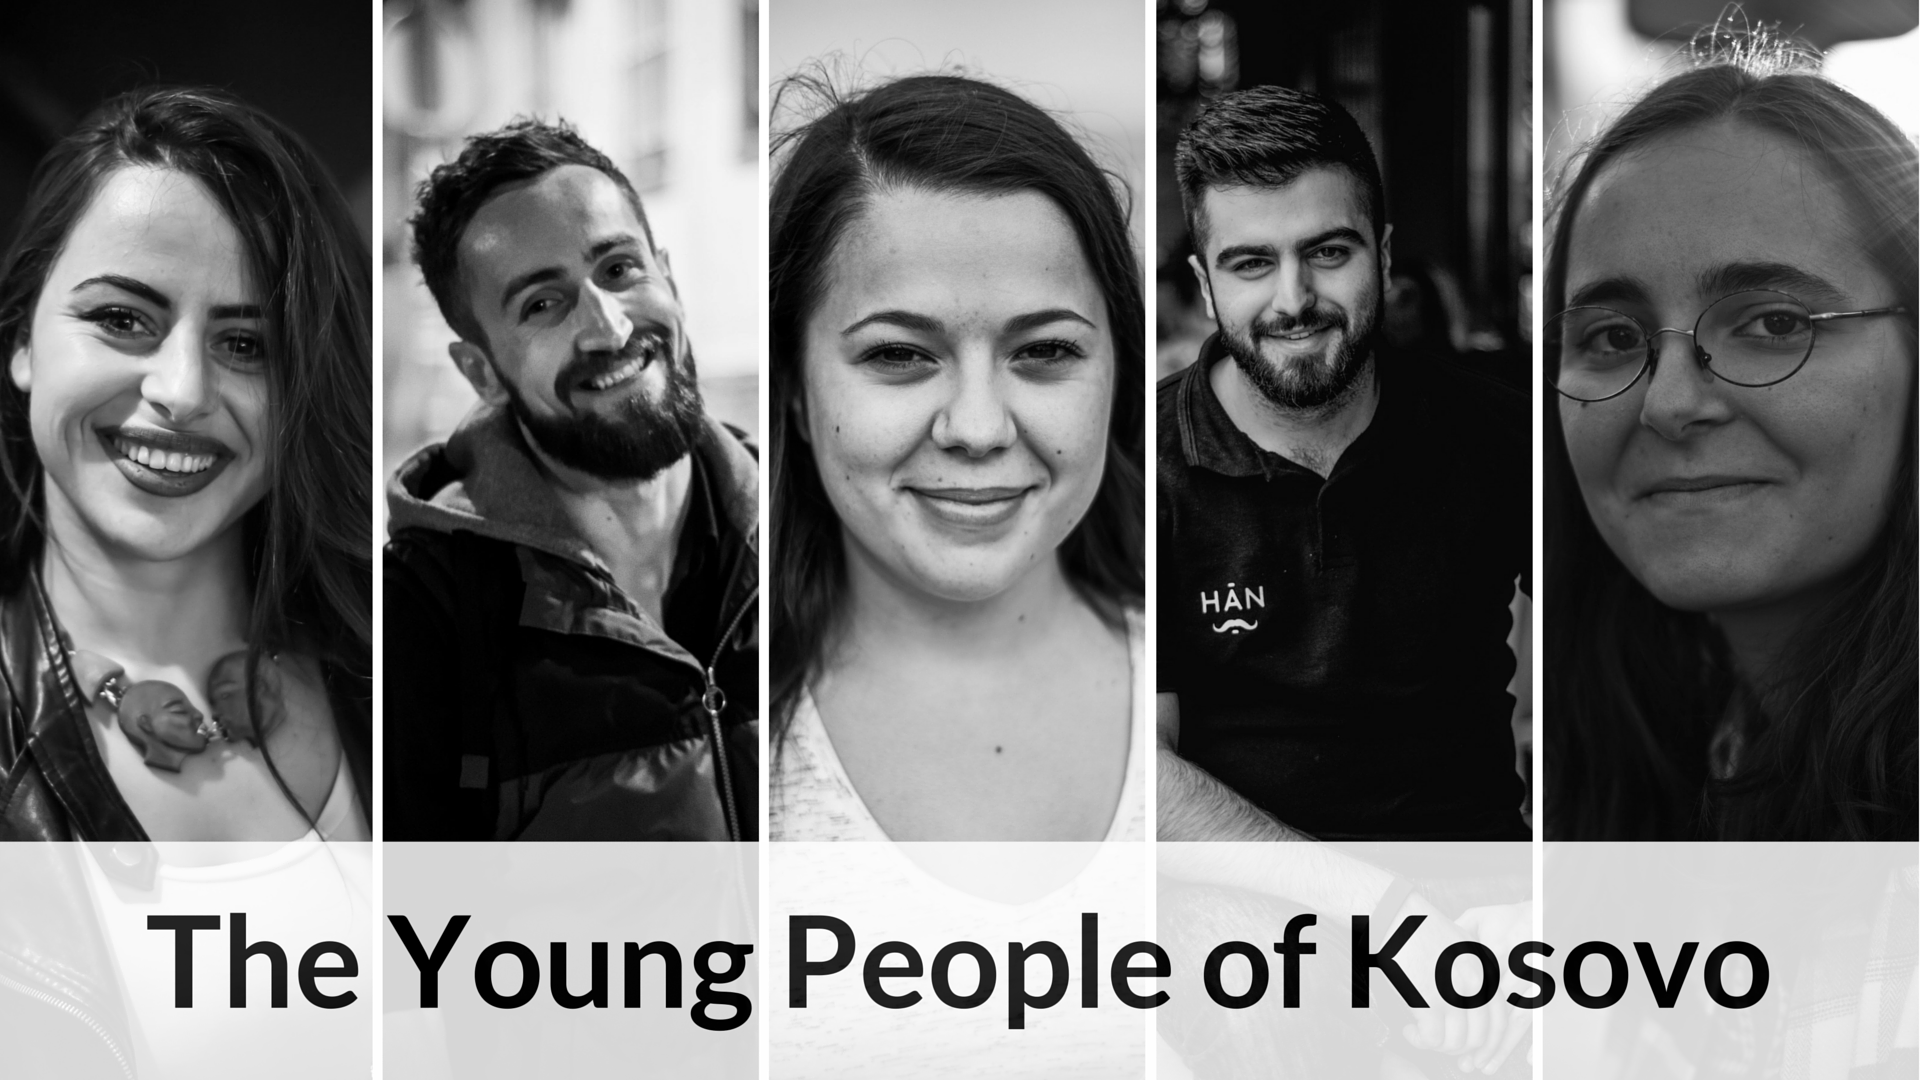 The Young People of Kosovo